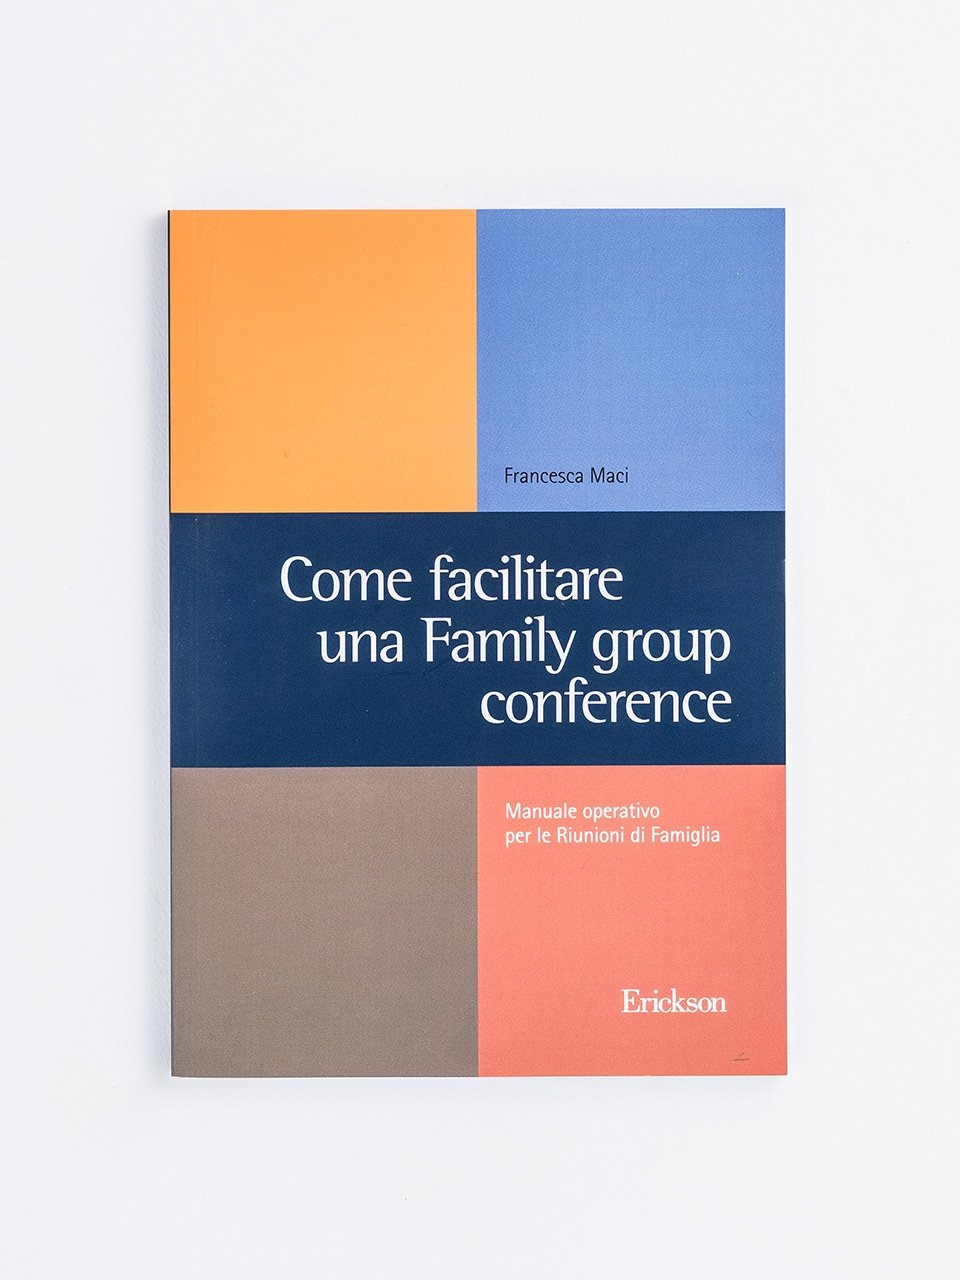 Come facilitare una Family group conference - Le difficoltà ortografiche - Volume 2 - Libri - App e software - Erickson